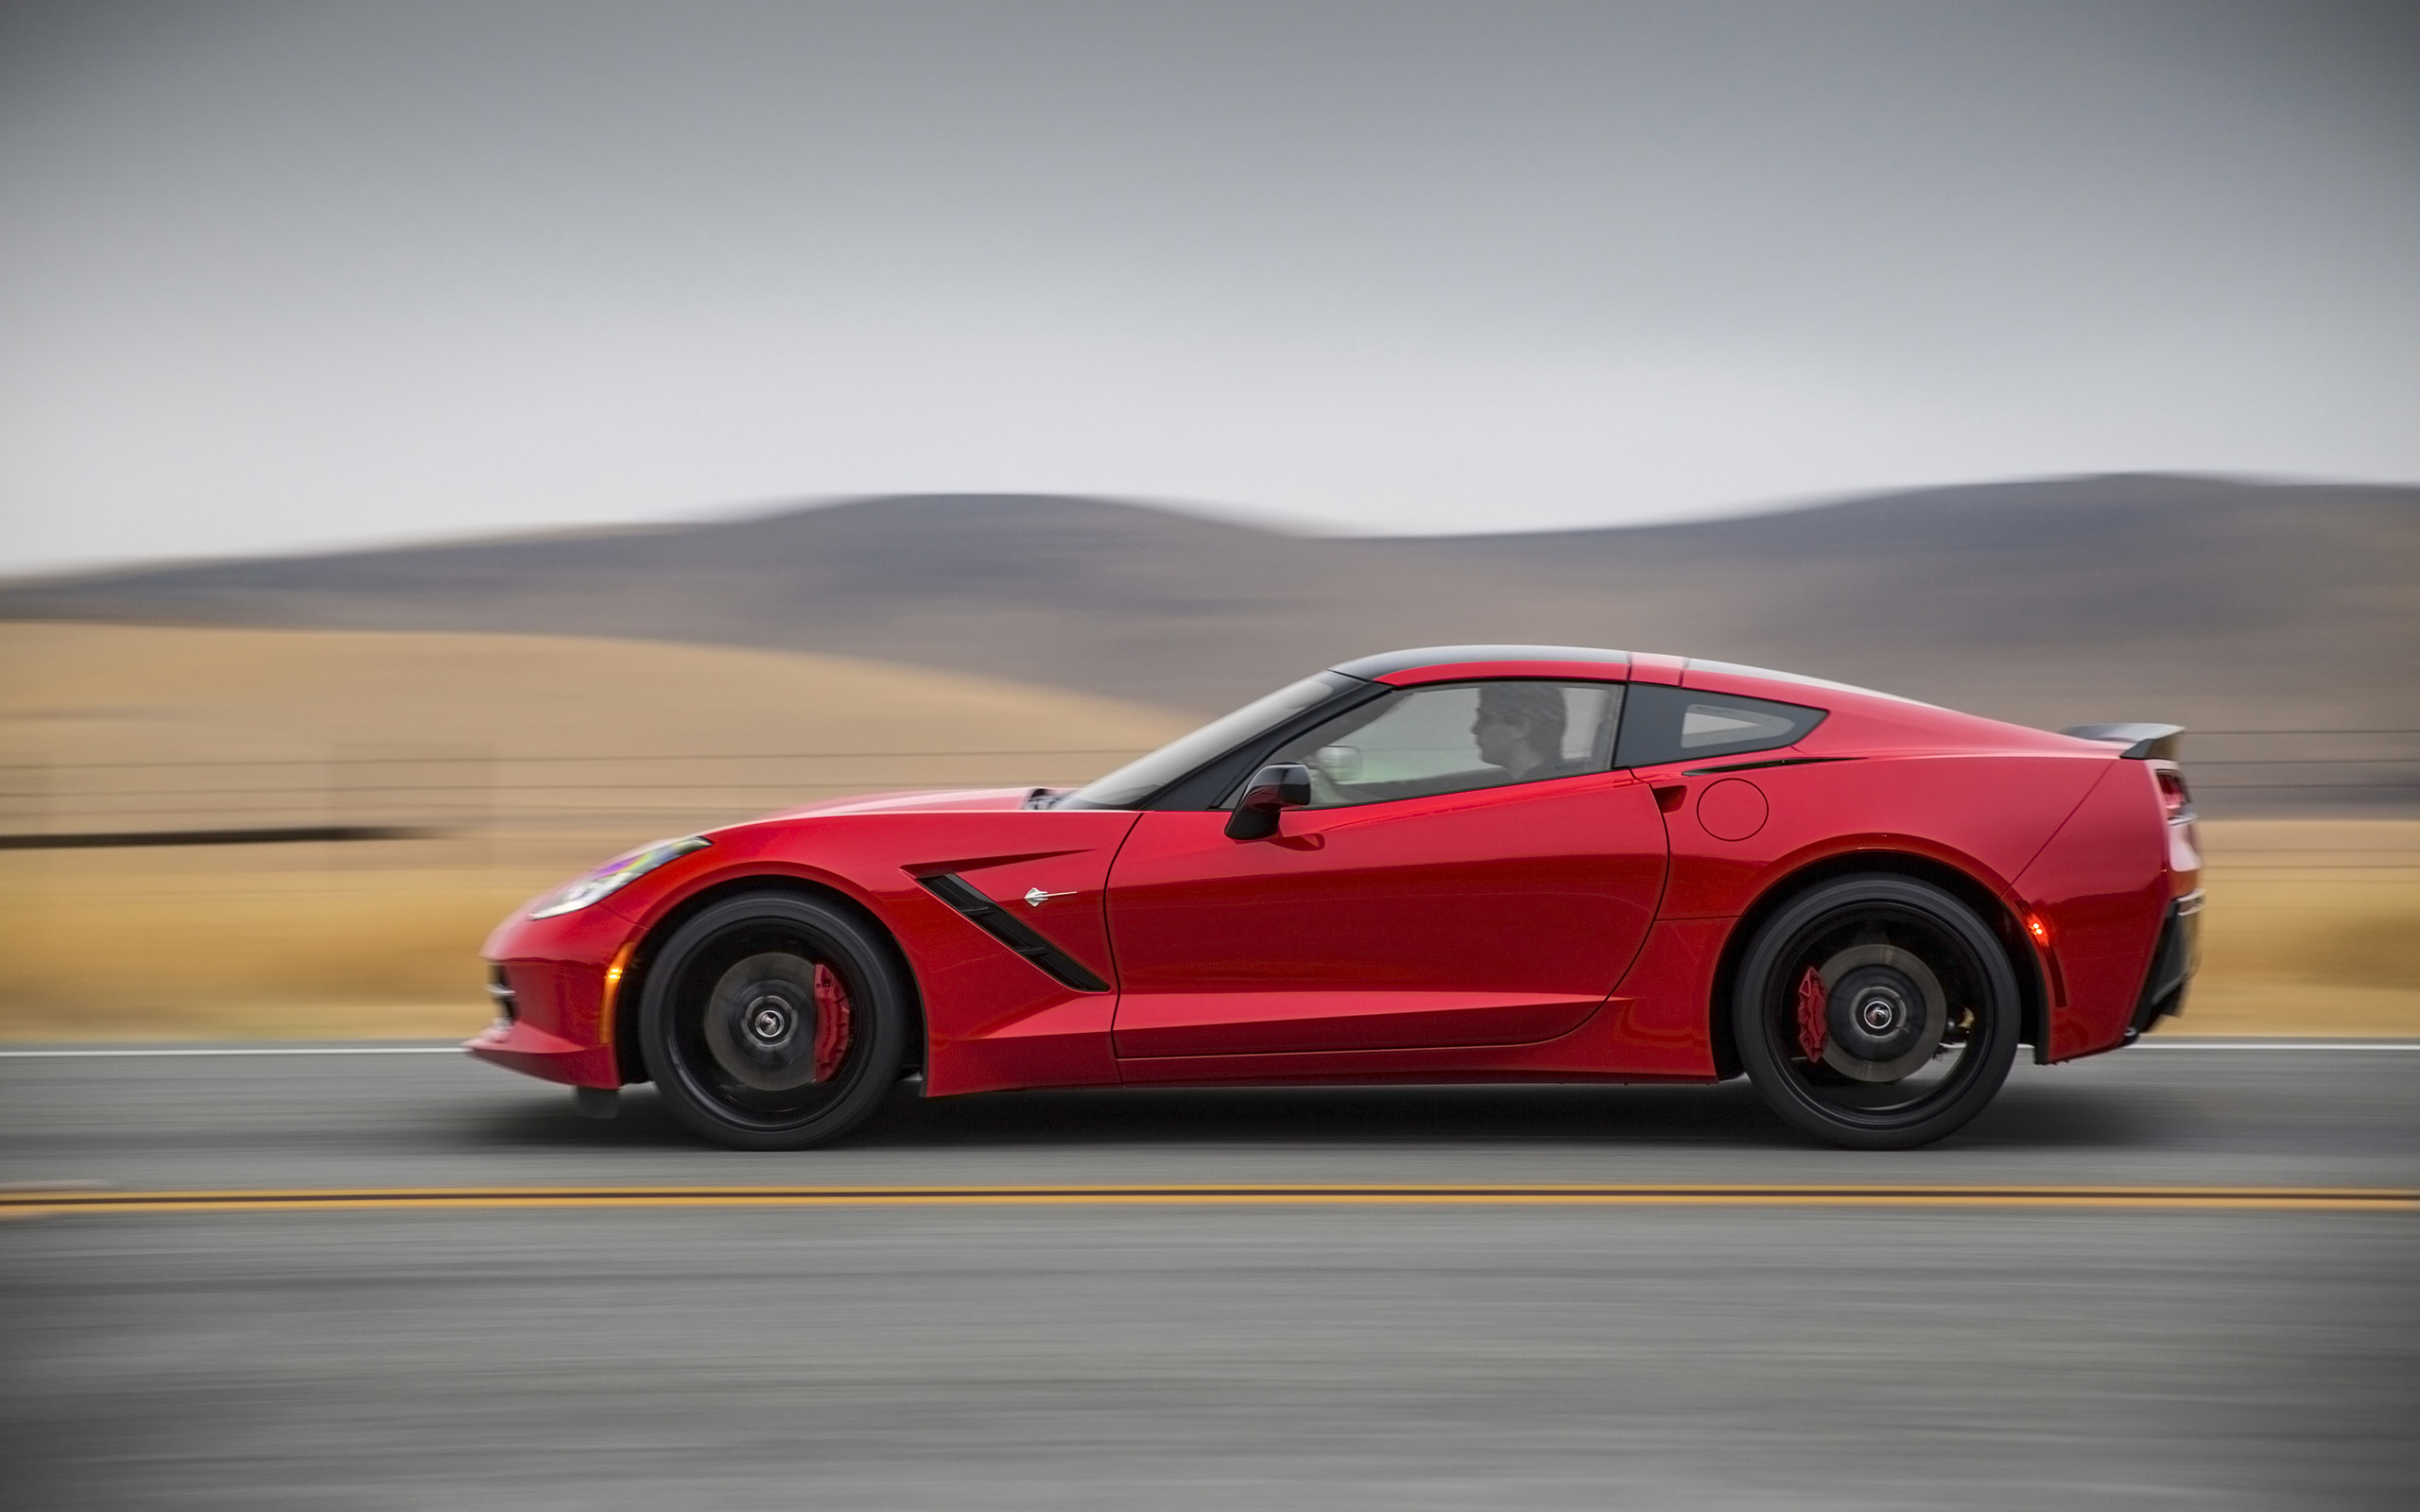 Chevrolet Corvette Stingray Side desktop wallpaper WallpaperPixel 2560x1600